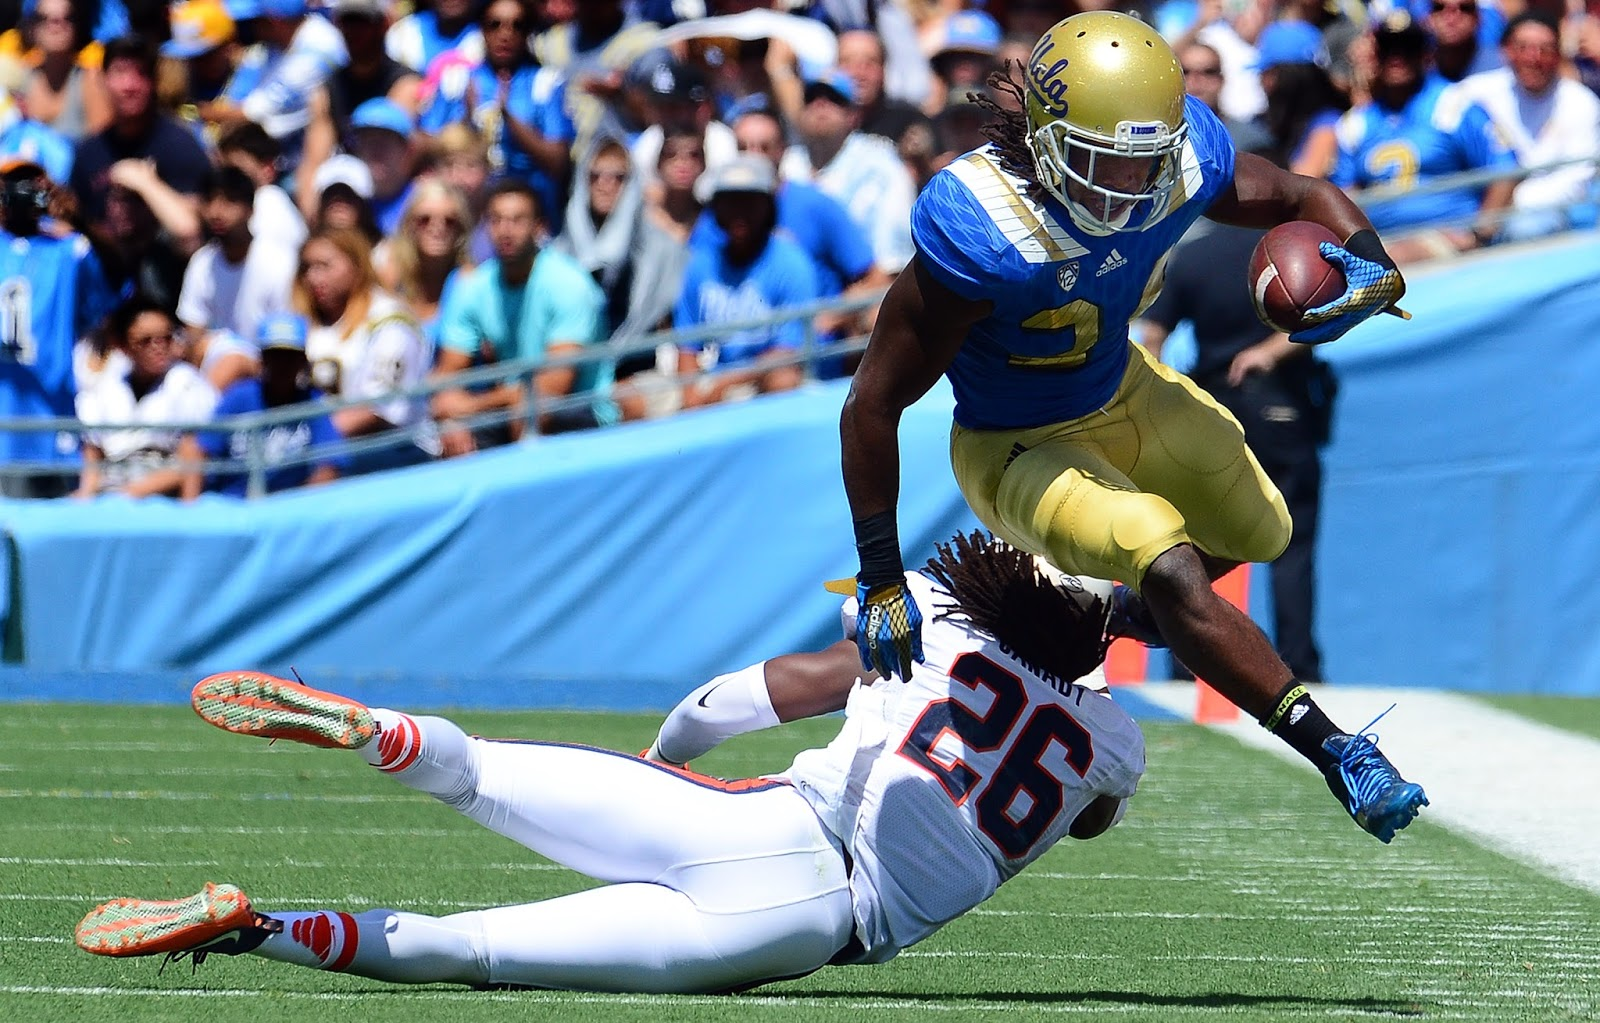 UCLA RB Paul Perkins is the star of the Bruin offense. (Photo: Keith Birmingham/Pasadena Star-News)